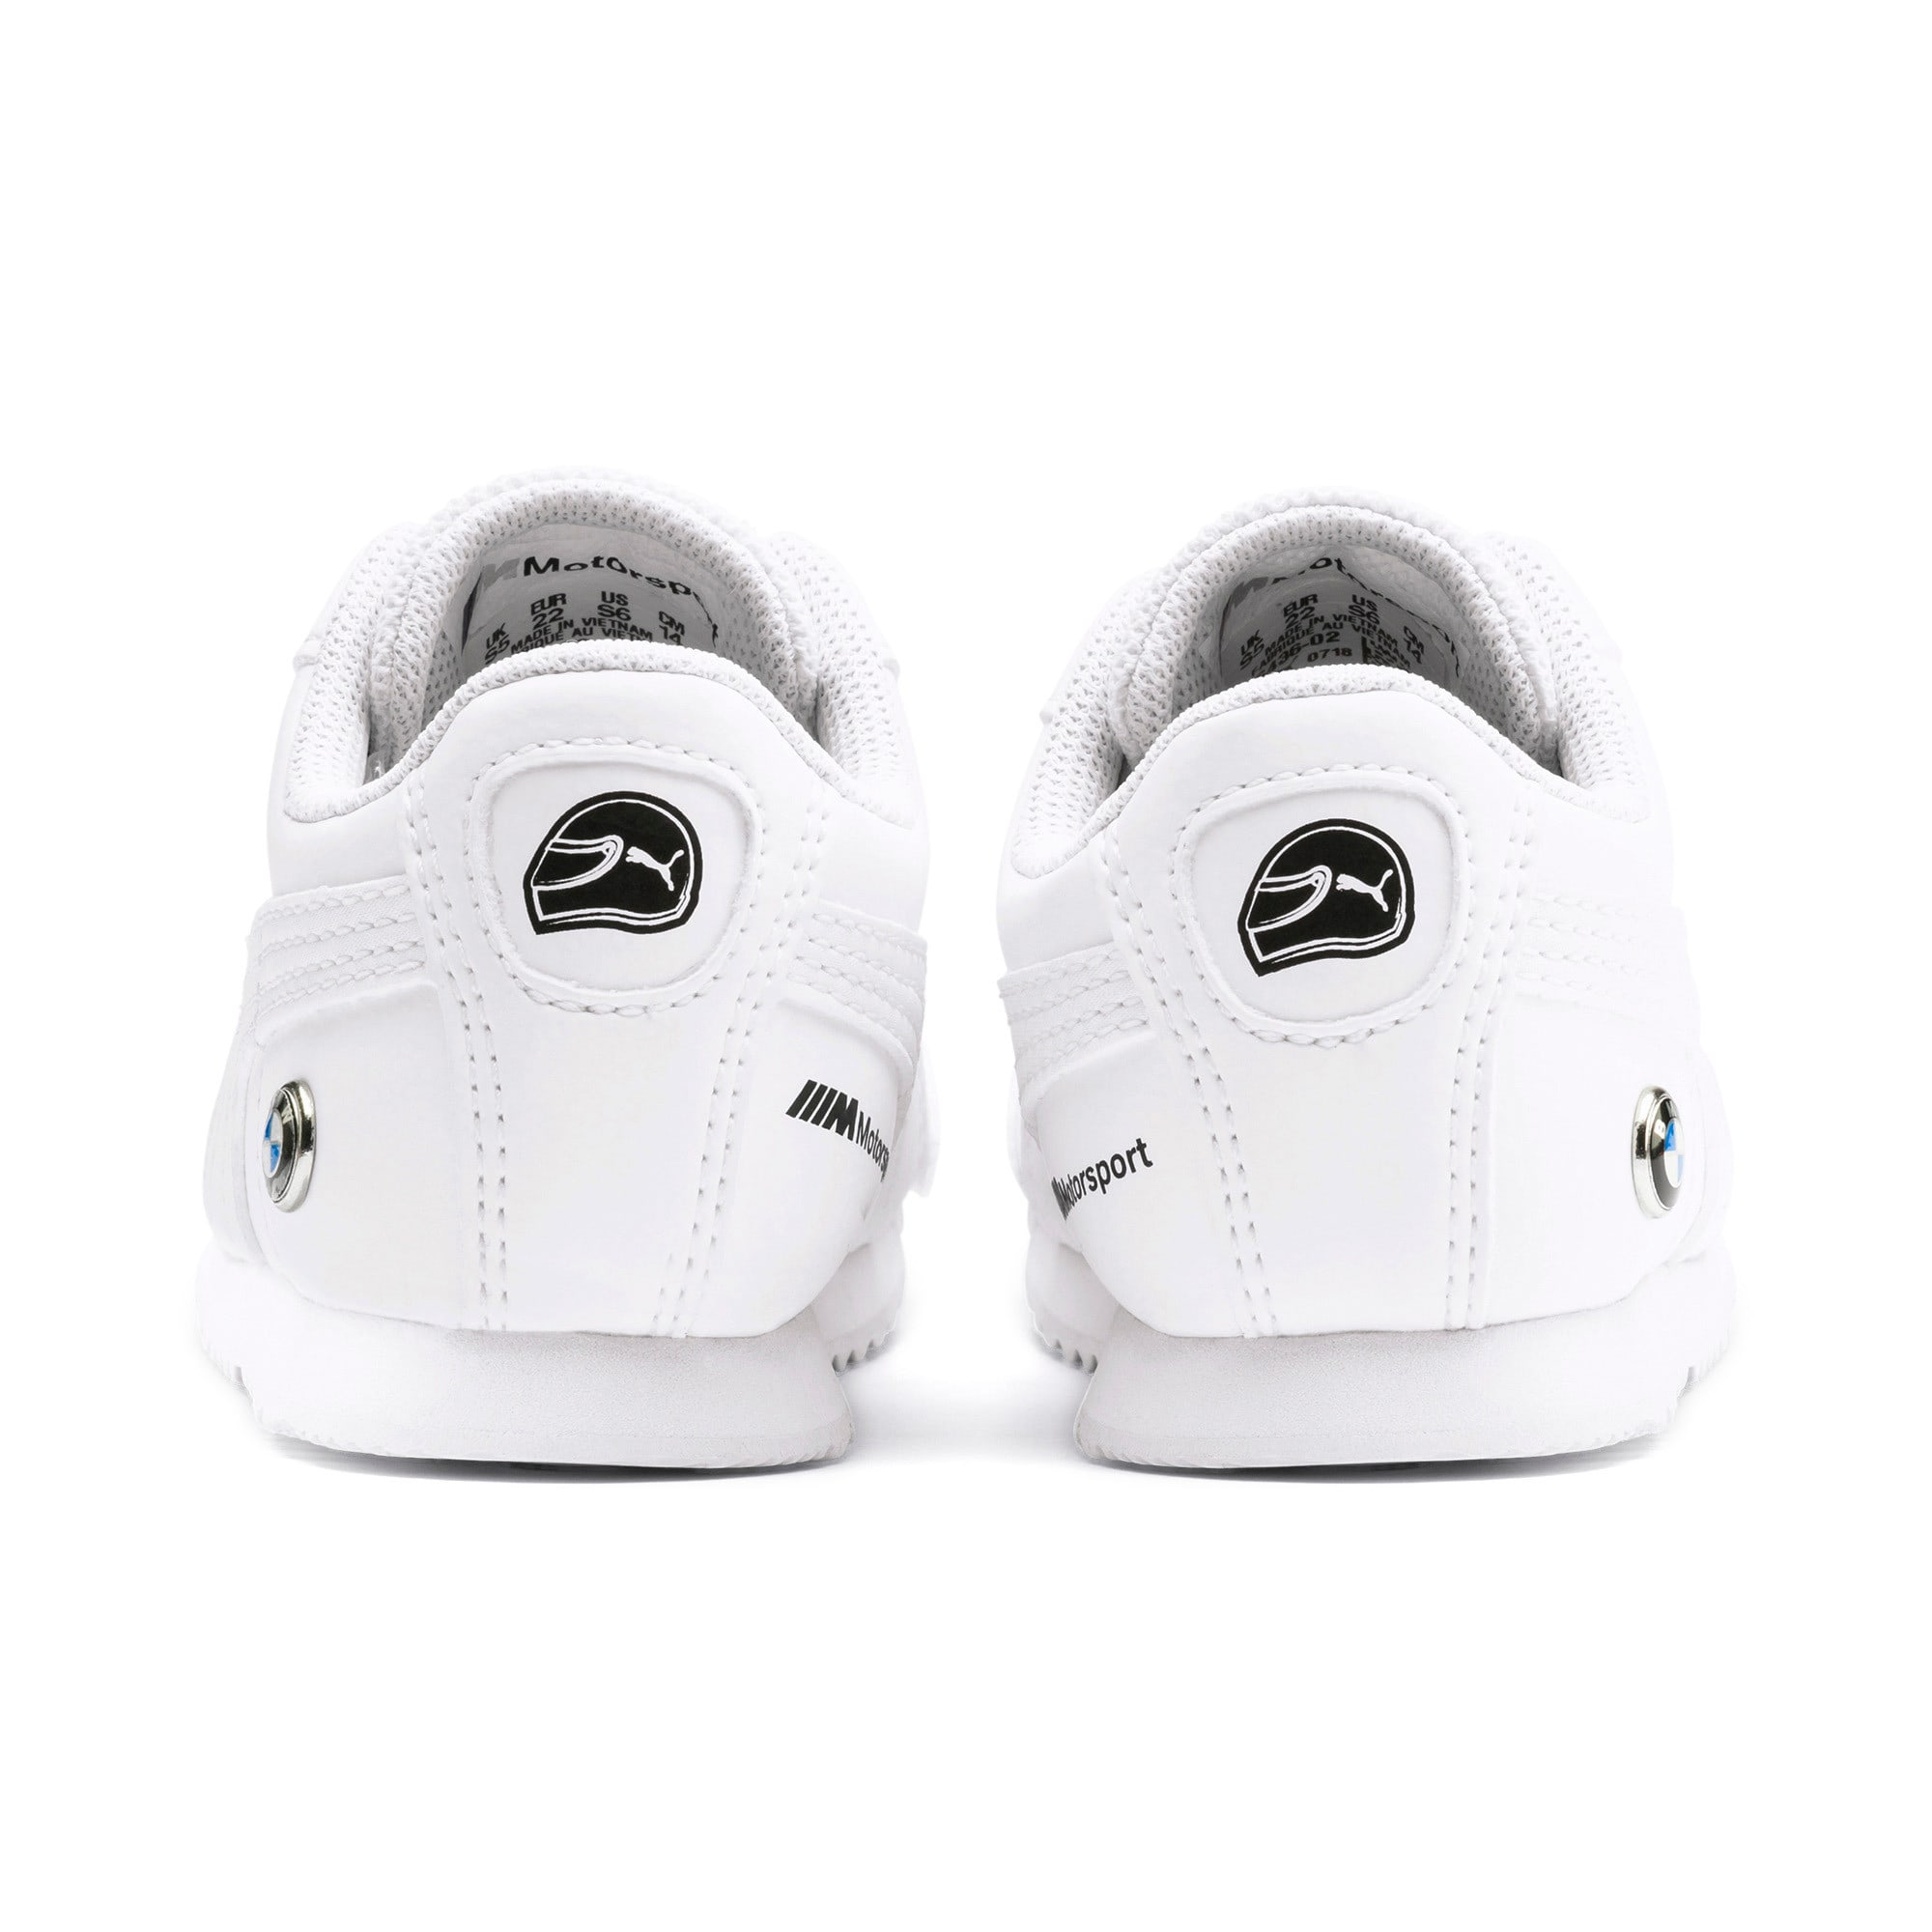 Thumbnail 3 of BMW M Motorsport Roma Toddler Shoes, Puma White-Puma White, medium